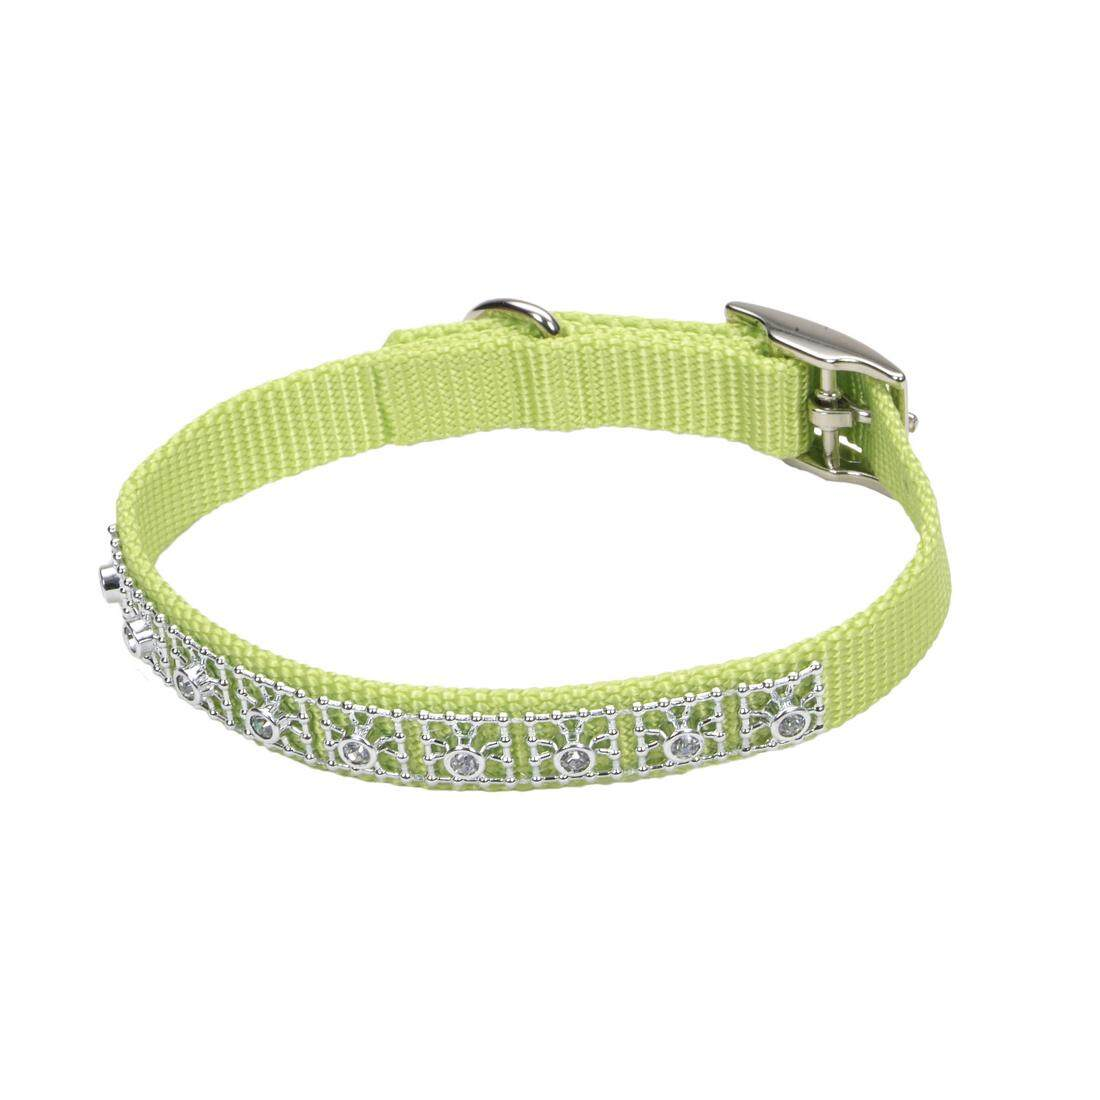 "[Coastal] Nylon Jeweled Dog Collar 5/8"" - Neon Pink"